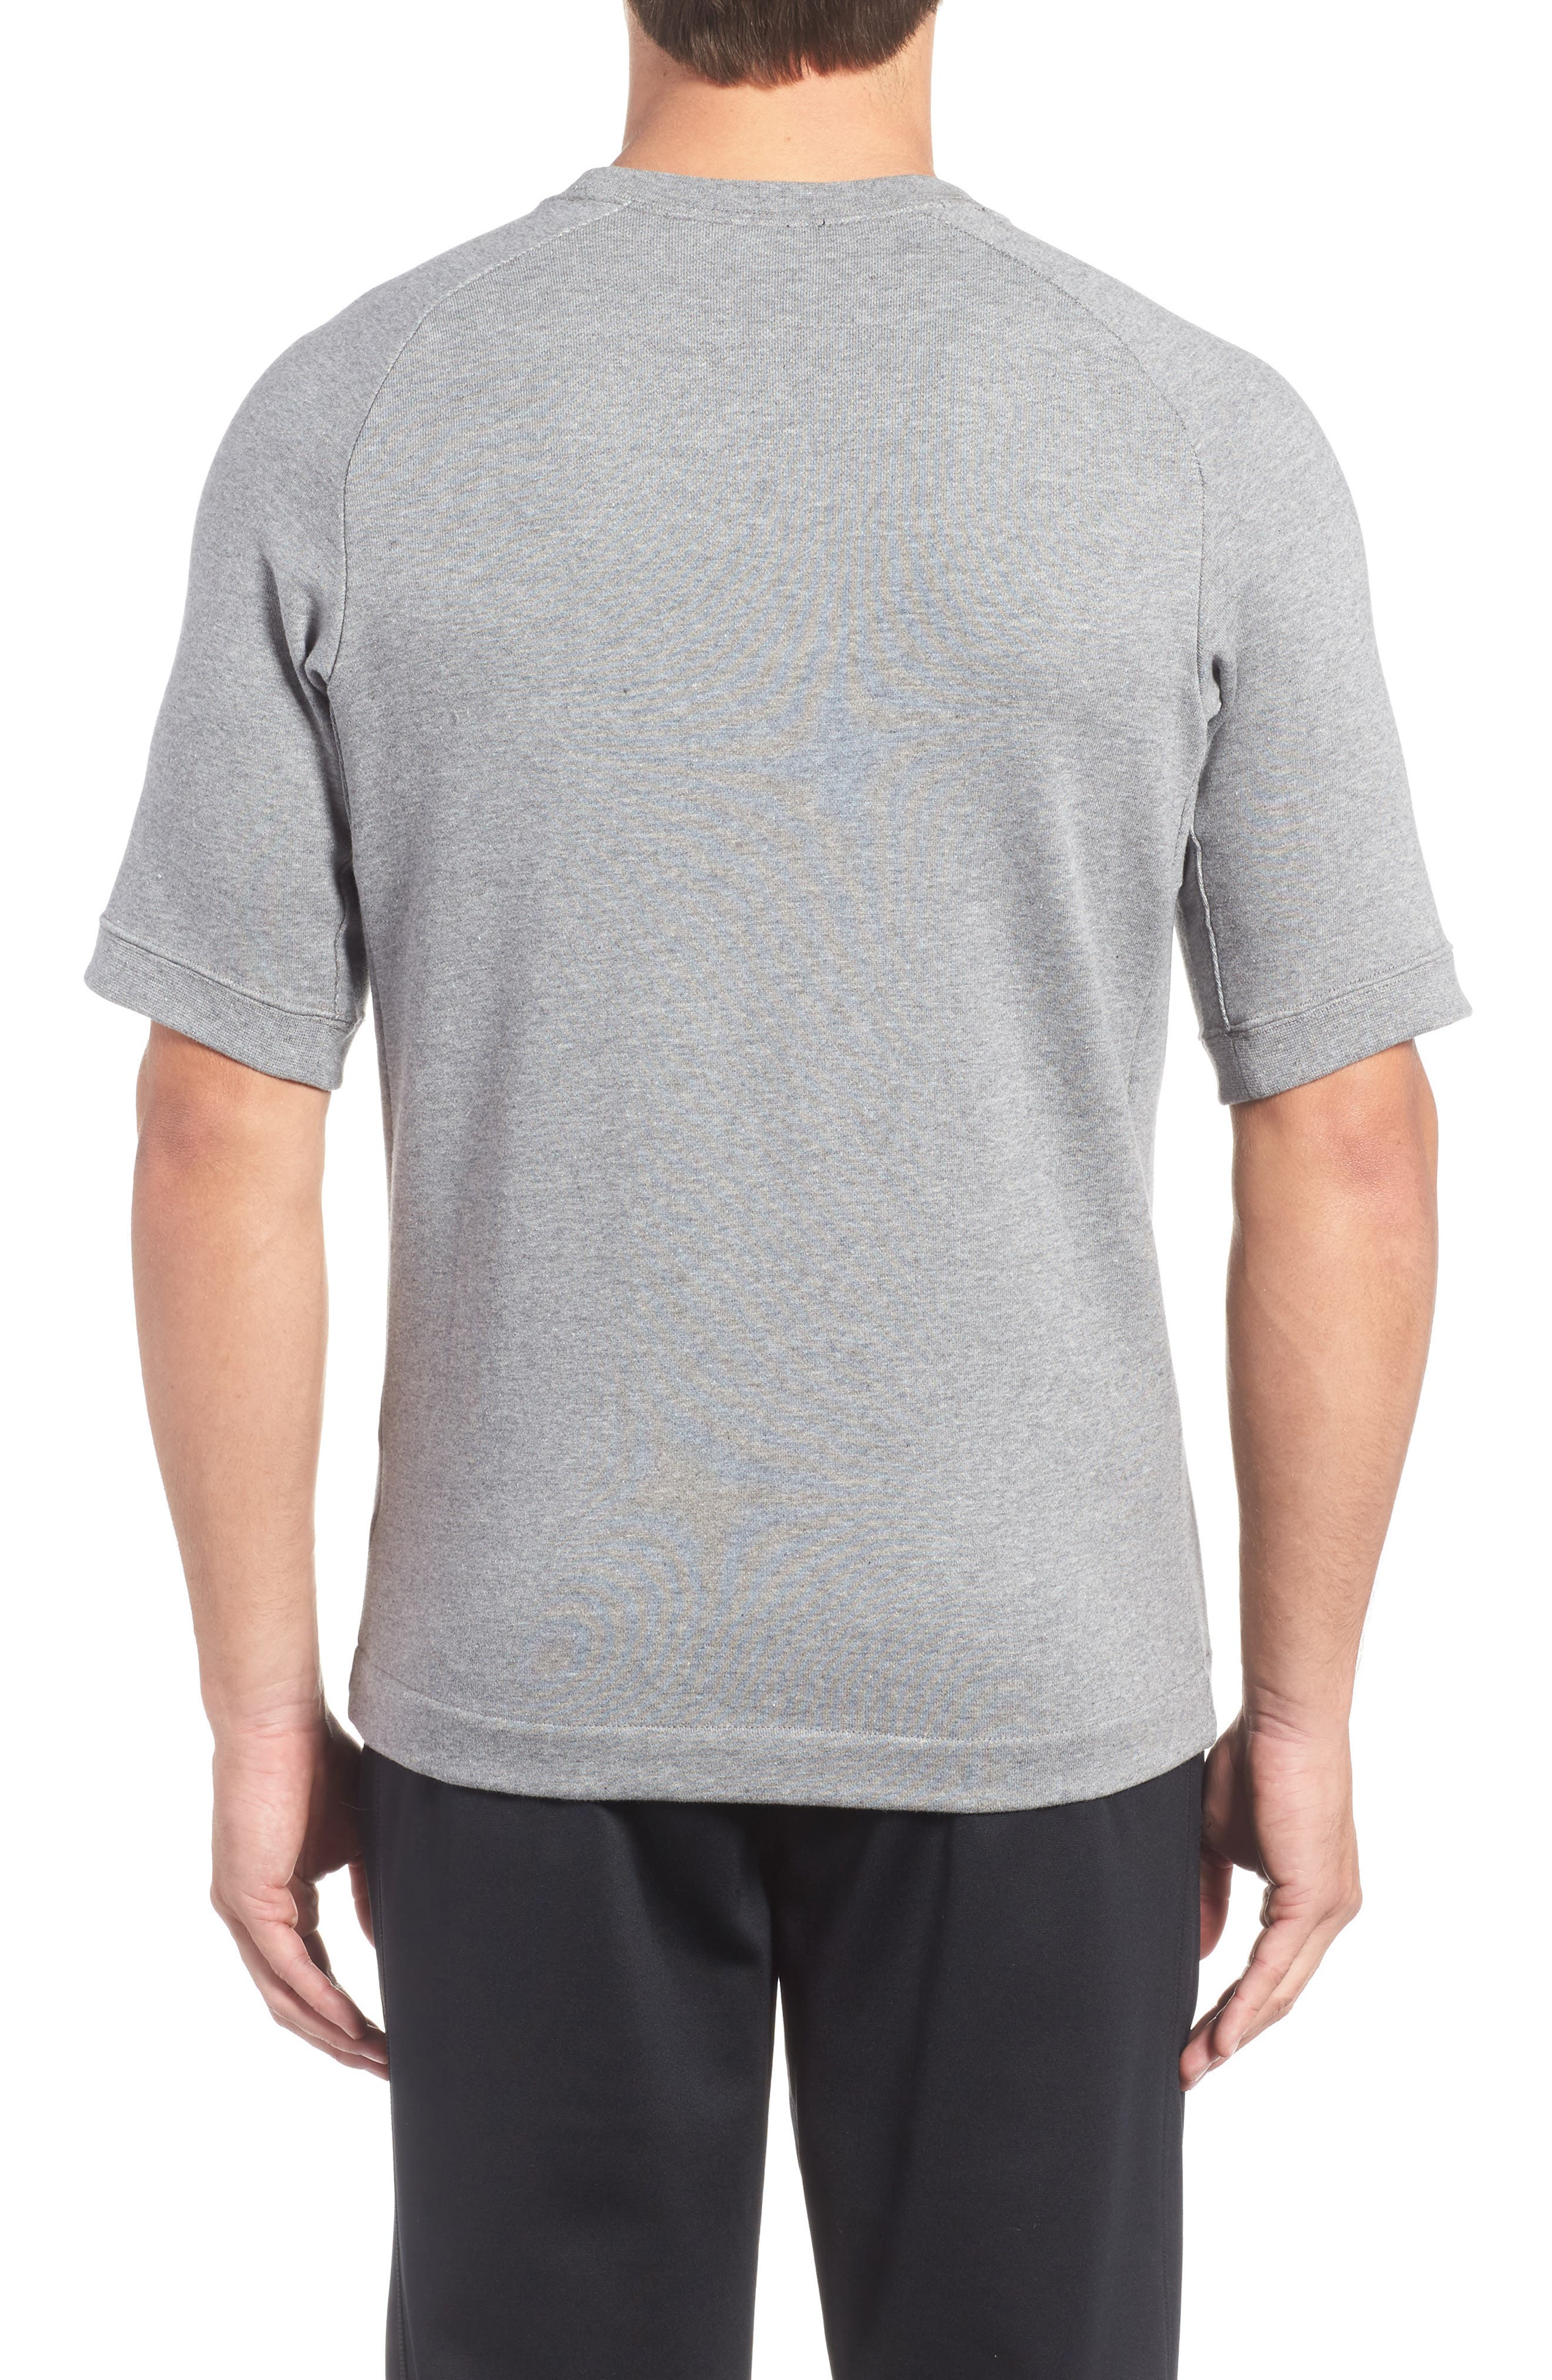 Sportswear Modern Crew T-Shirt,                             Alternate thumbnail 3, color,